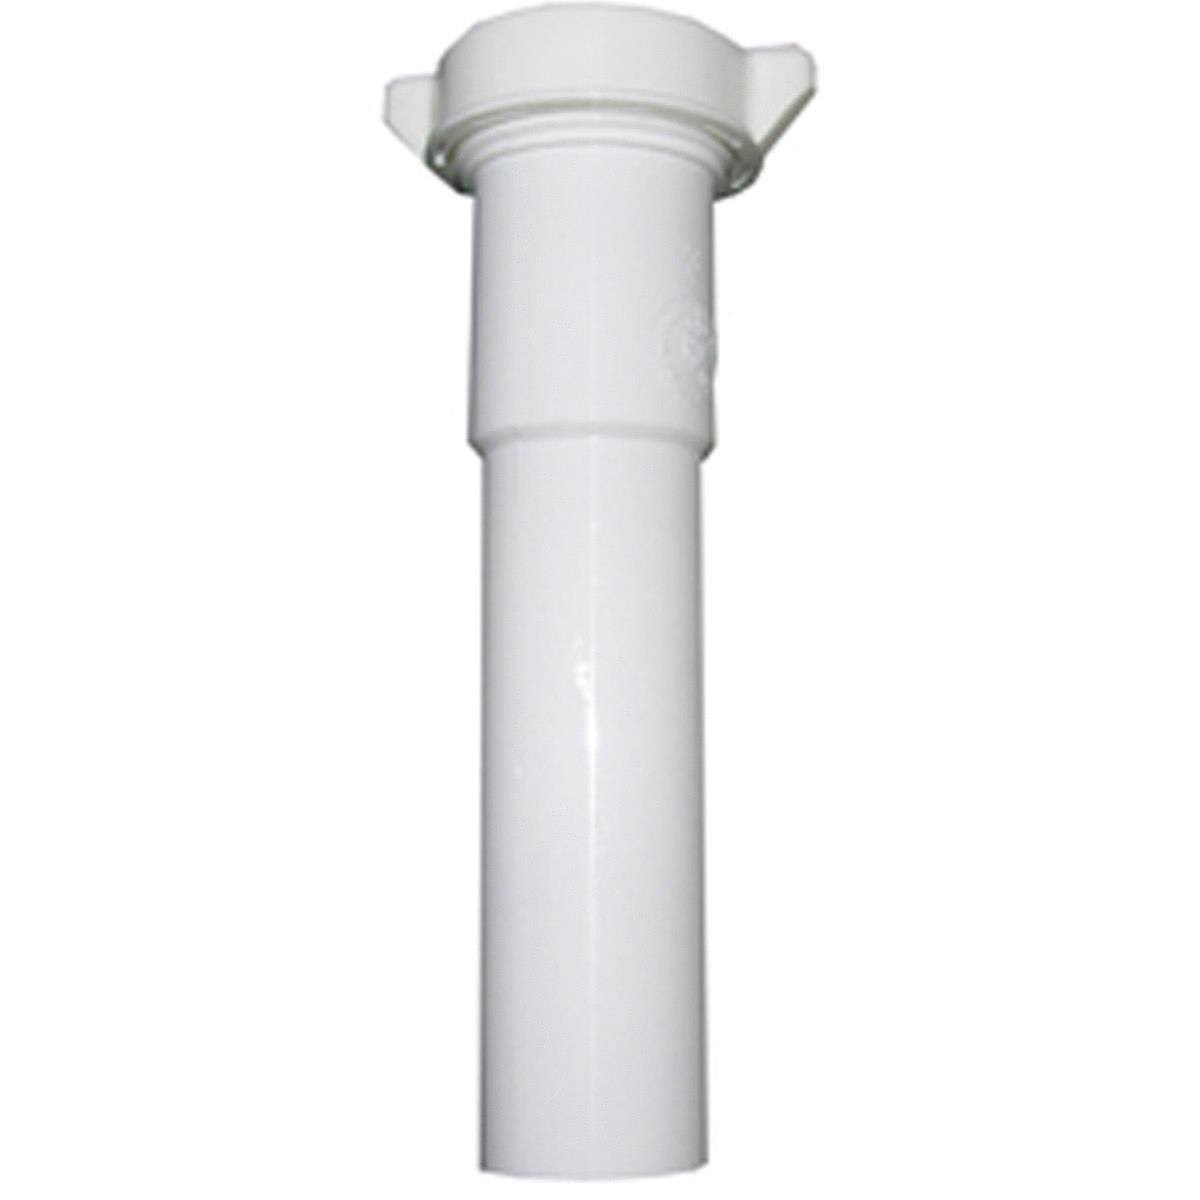 "Larsen Supply Lavatory Extension - White, 1.25"" x 12"""